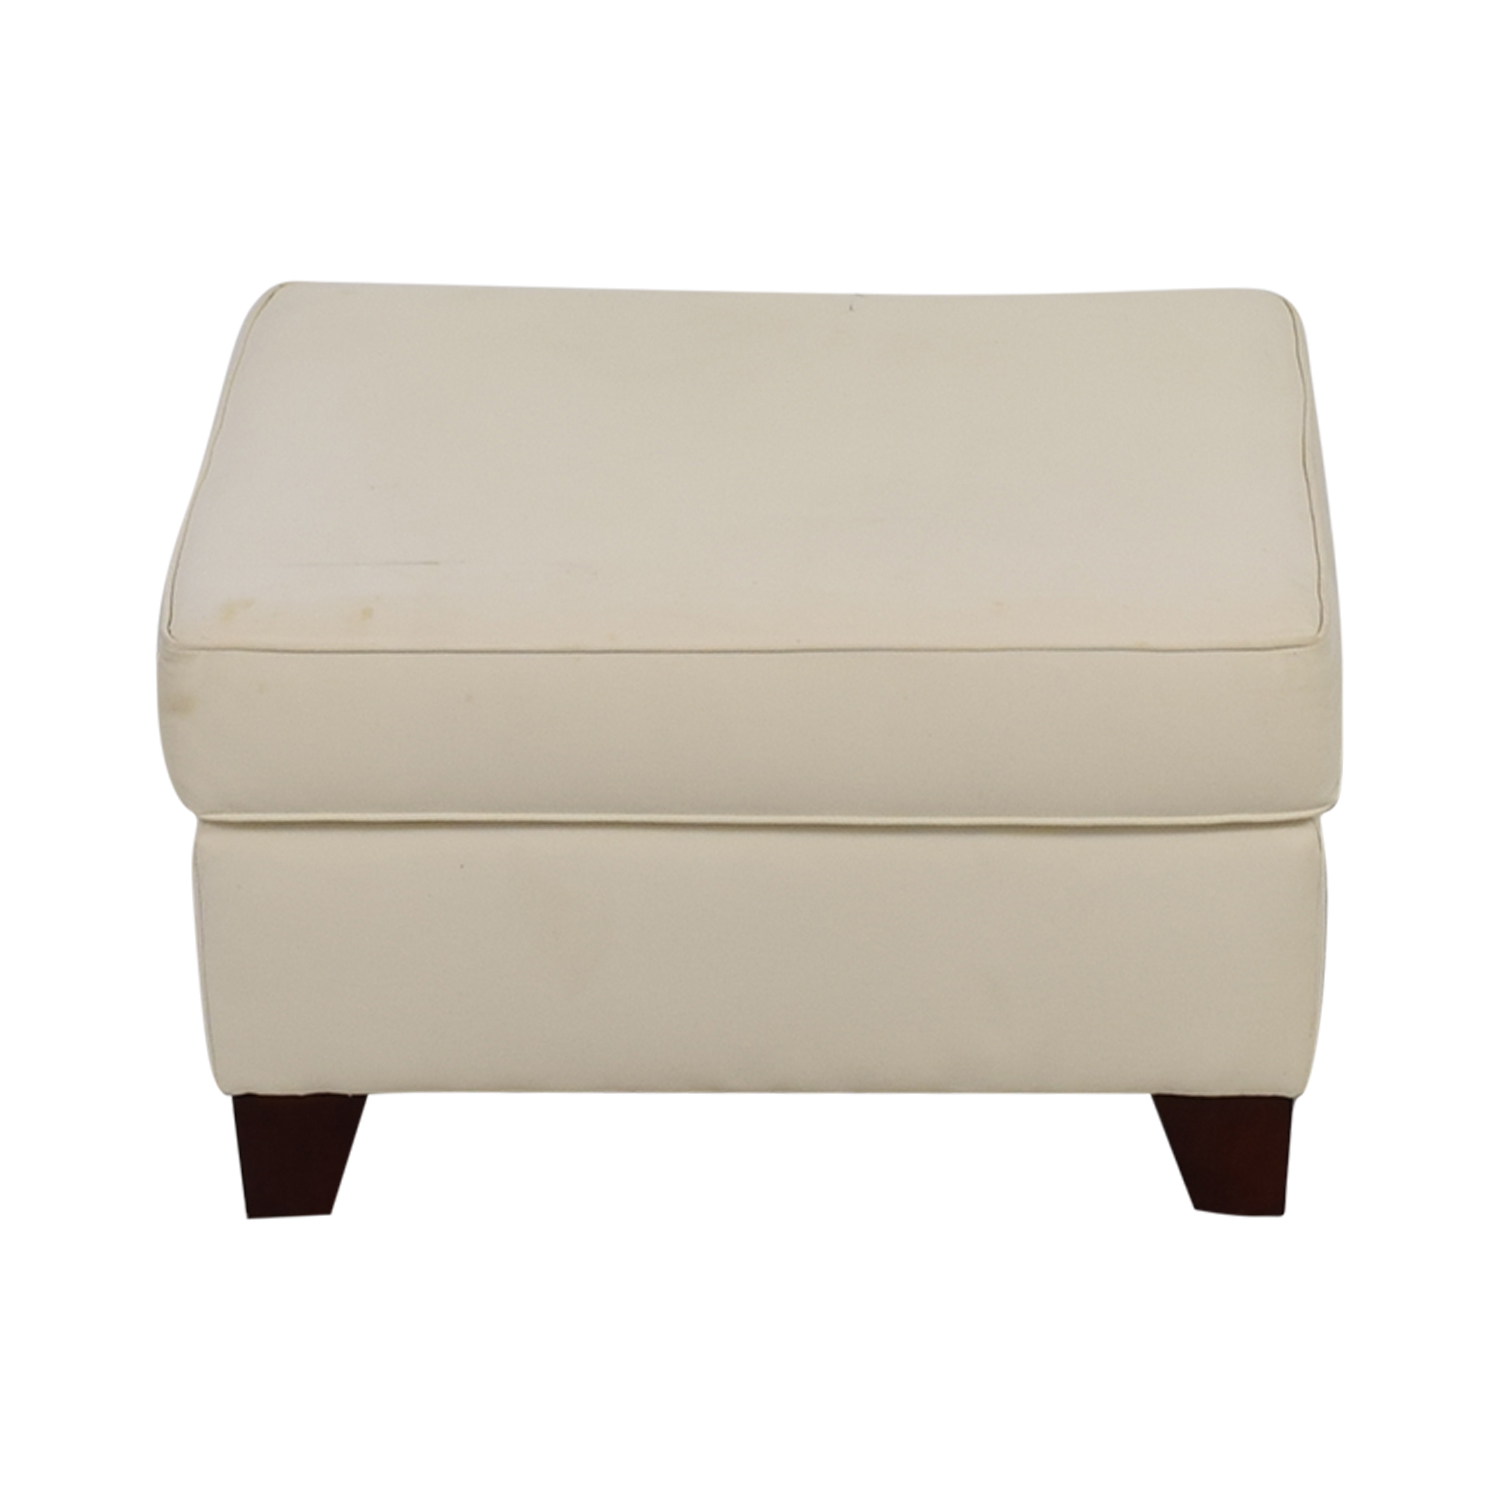 58% OFF Pottery Barn Pottery Barn White Ottoman Chairs